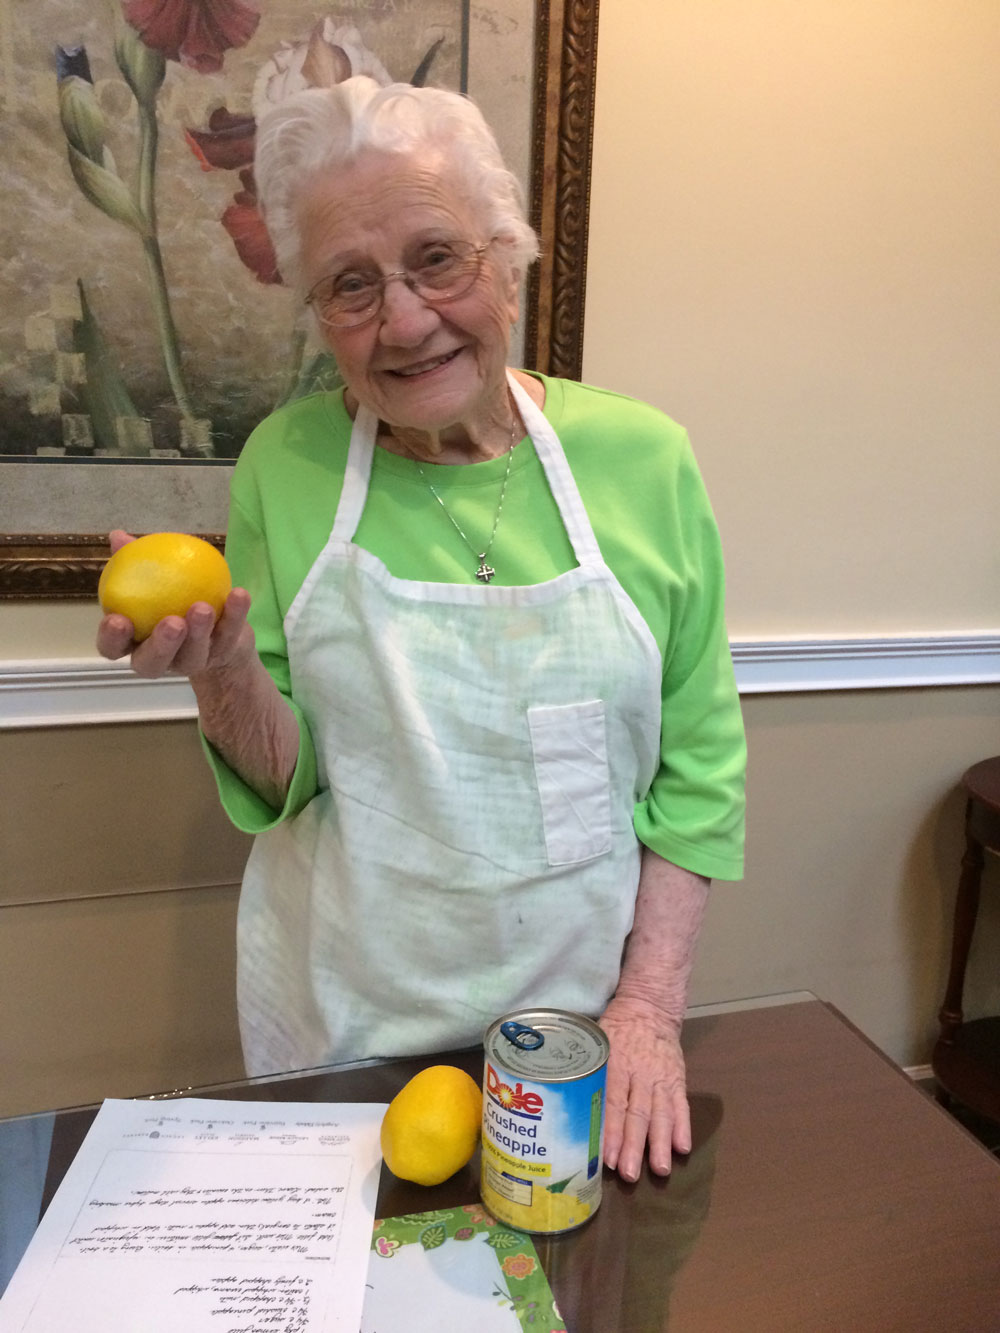 Memory care resident showing family recipe of lemon jello salad at Angels for the Elderly